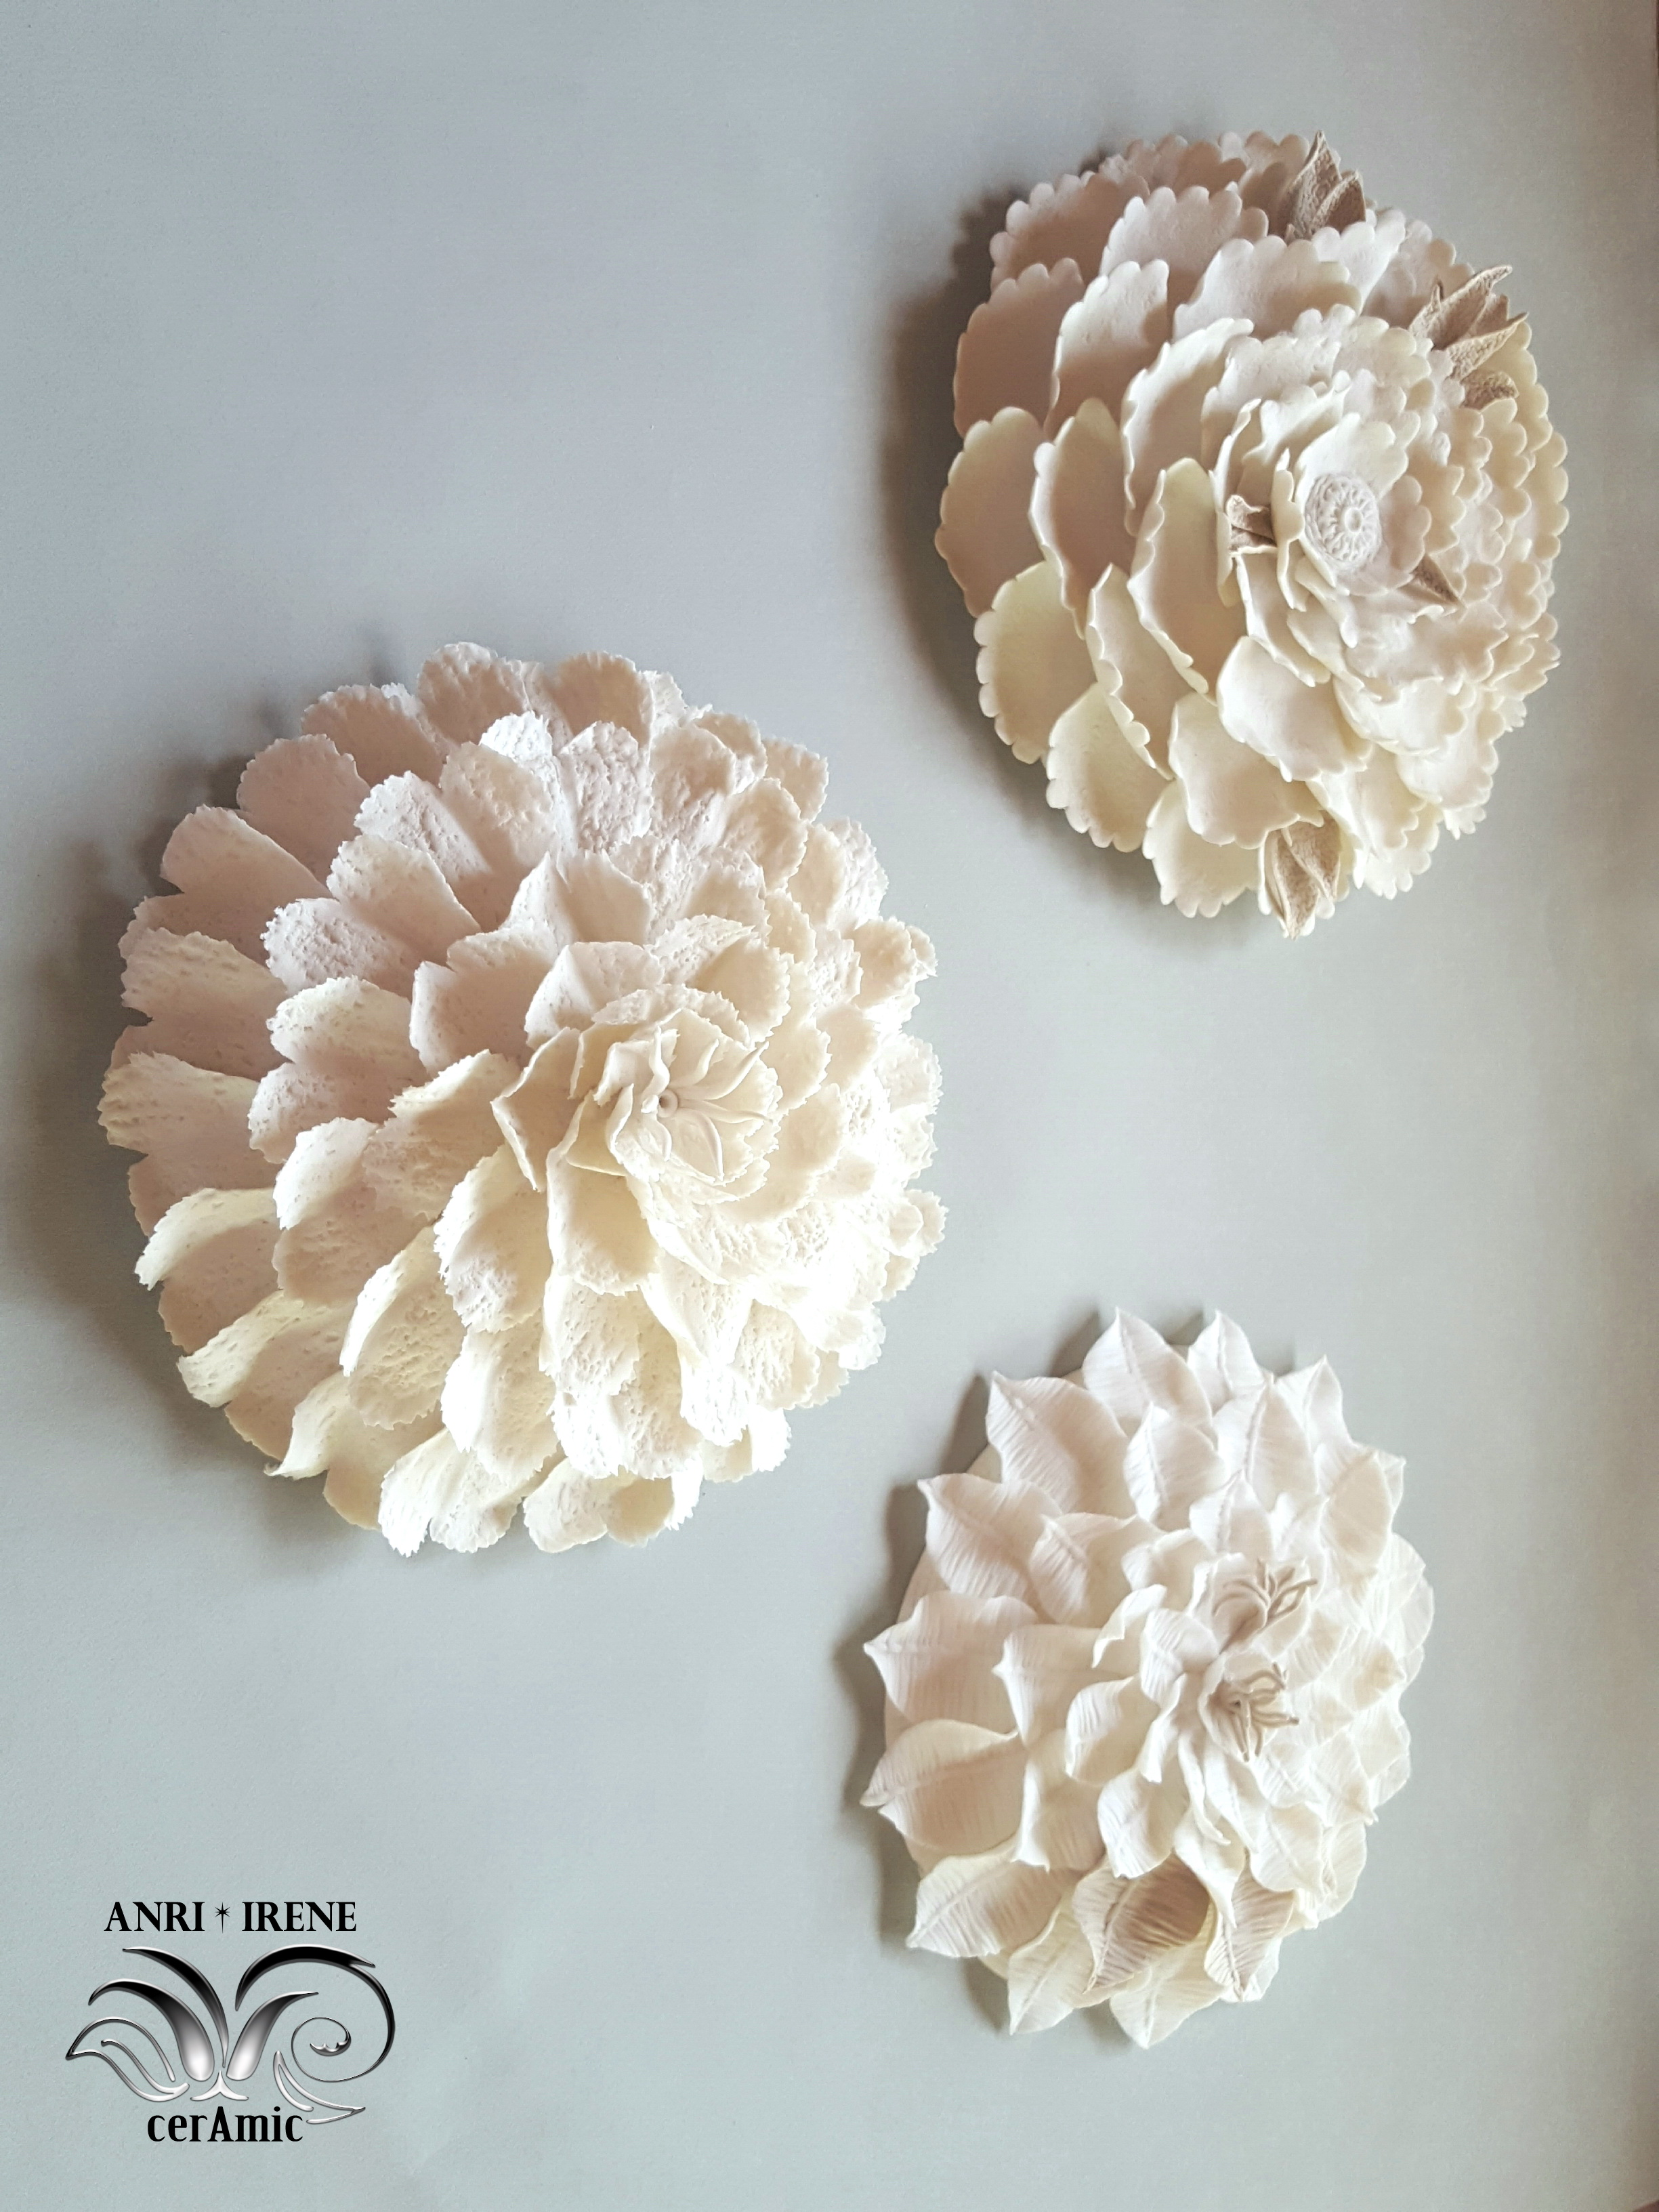 ceramic floral wall decor